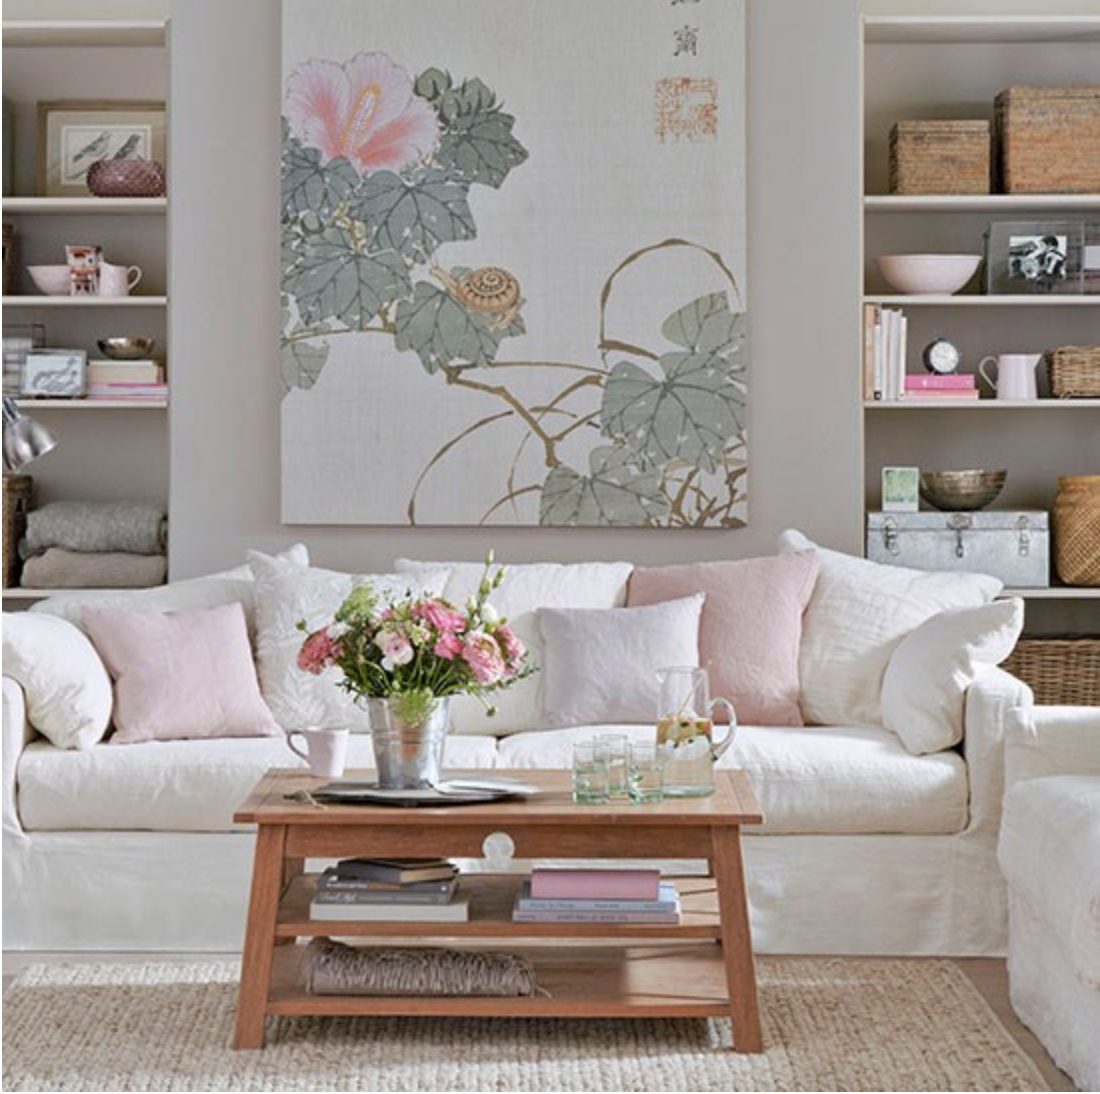 Home Decor By Color: Salas Pequenas, Romanticas E Muito Charmosas